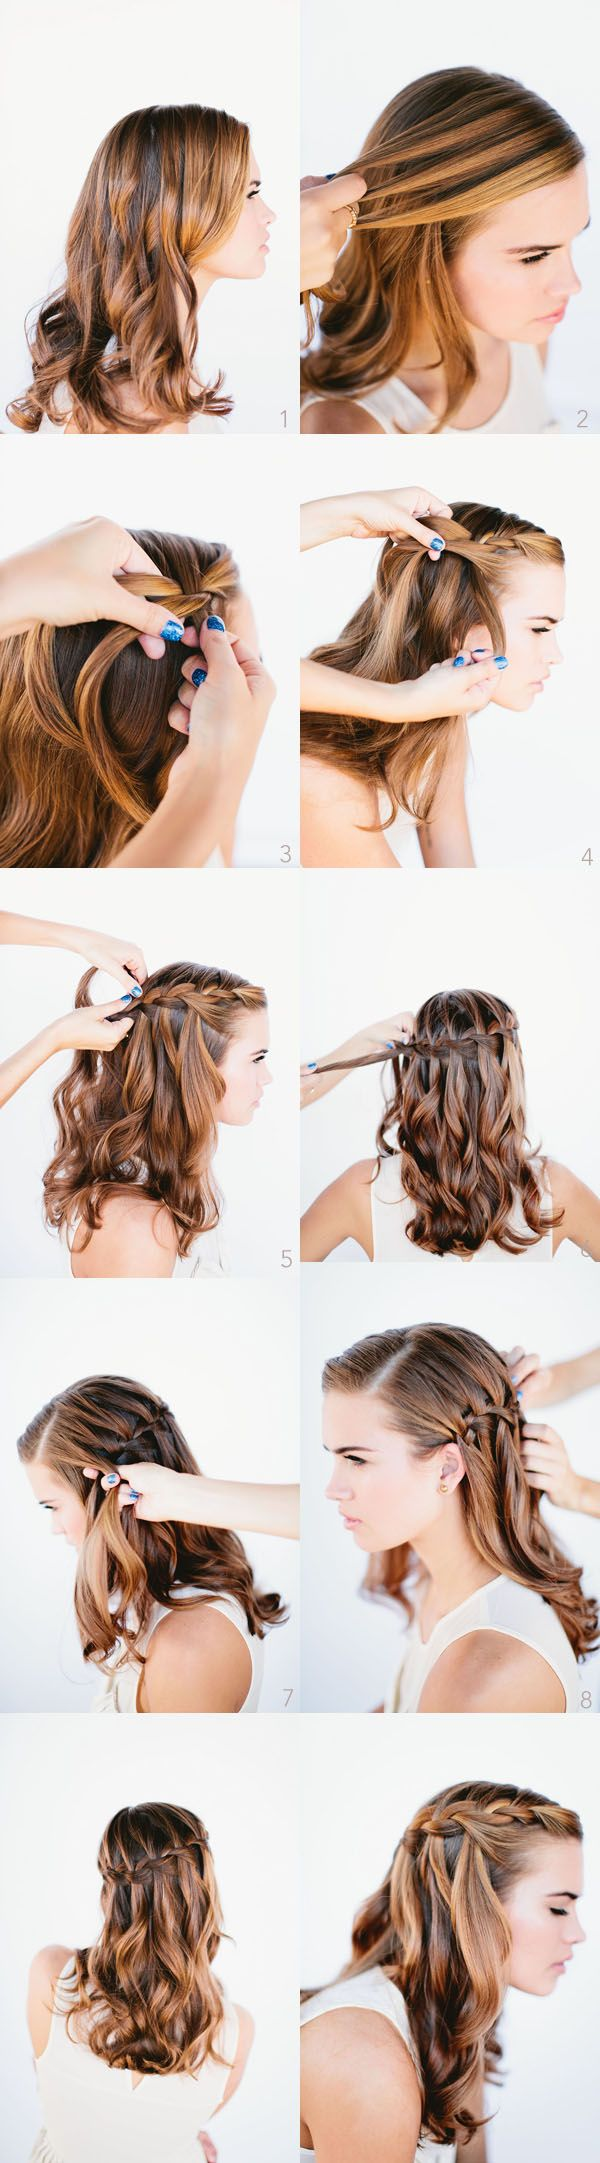 waterfall braid tutorial - needs a bit of practice to do